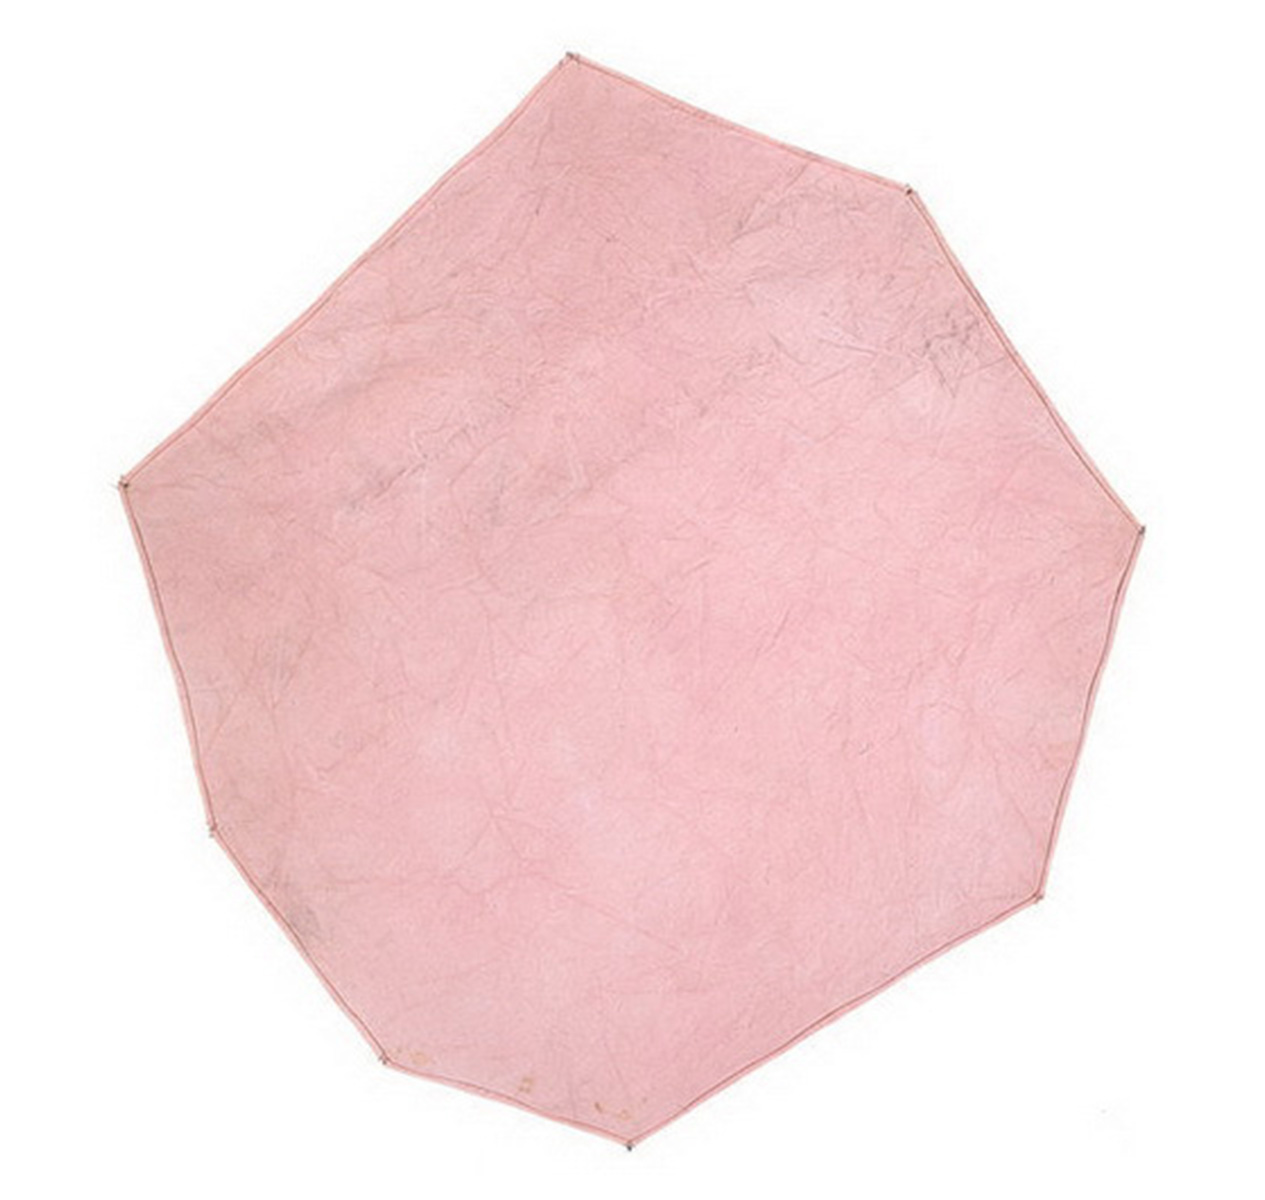 light-pink-octagon-1967.jpg